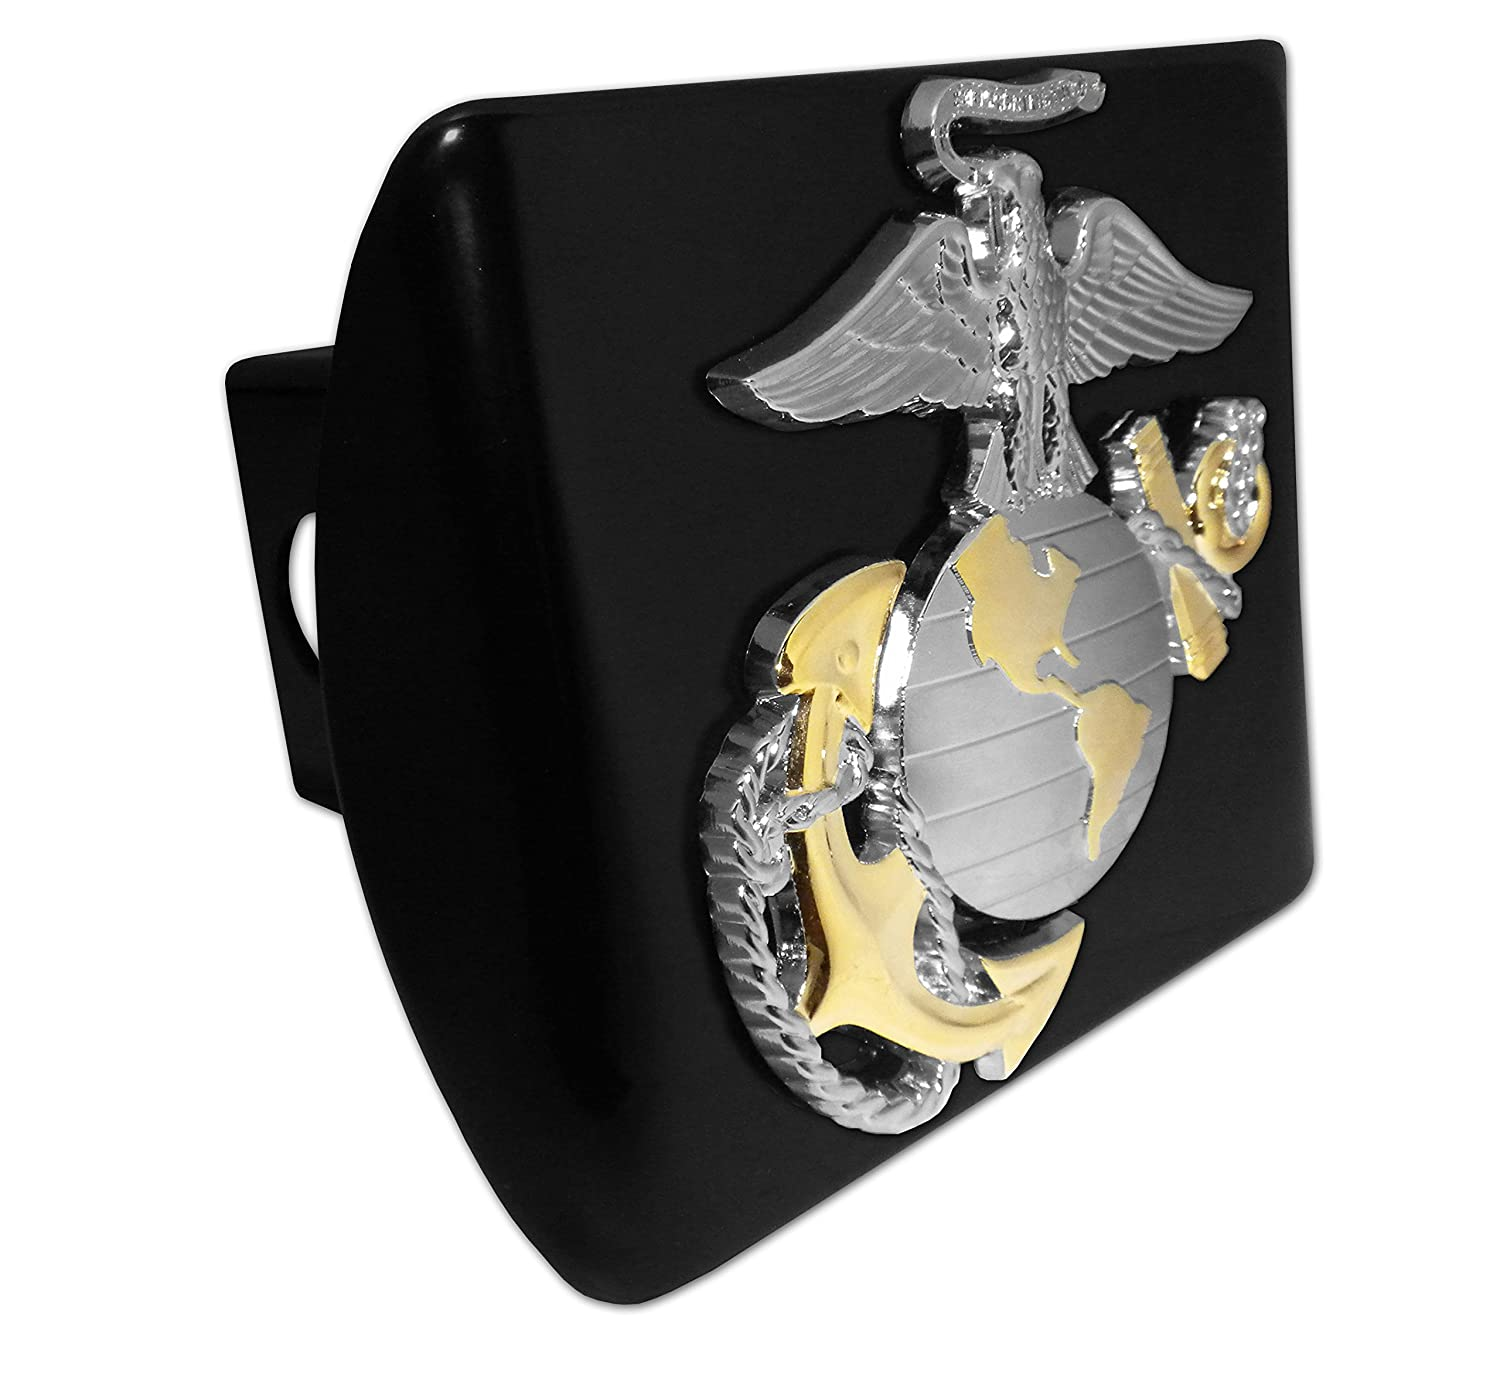 Ultra Premium US Marine Silver /& Gold Emblem on Black METAL Hitch Cover